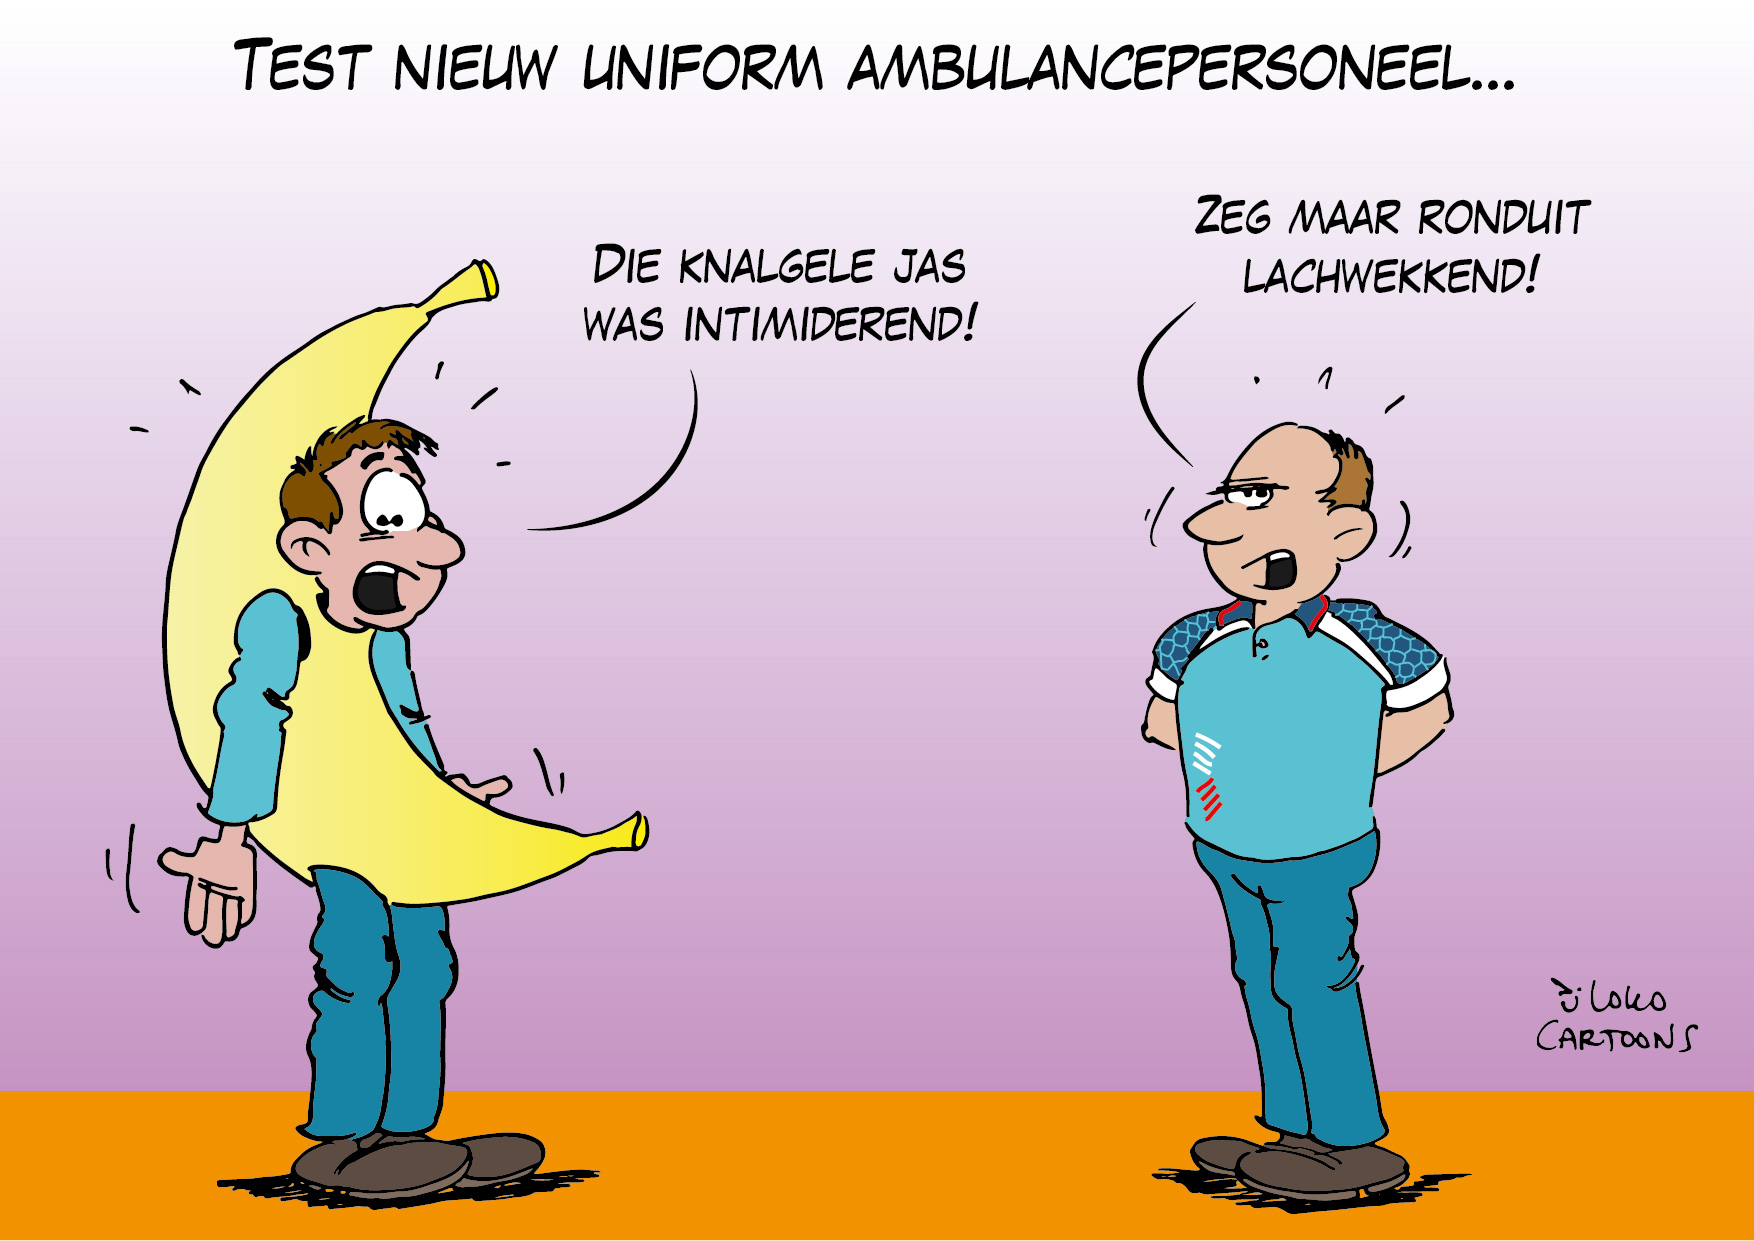 Test nieuw uniform ambulancepersoneel…